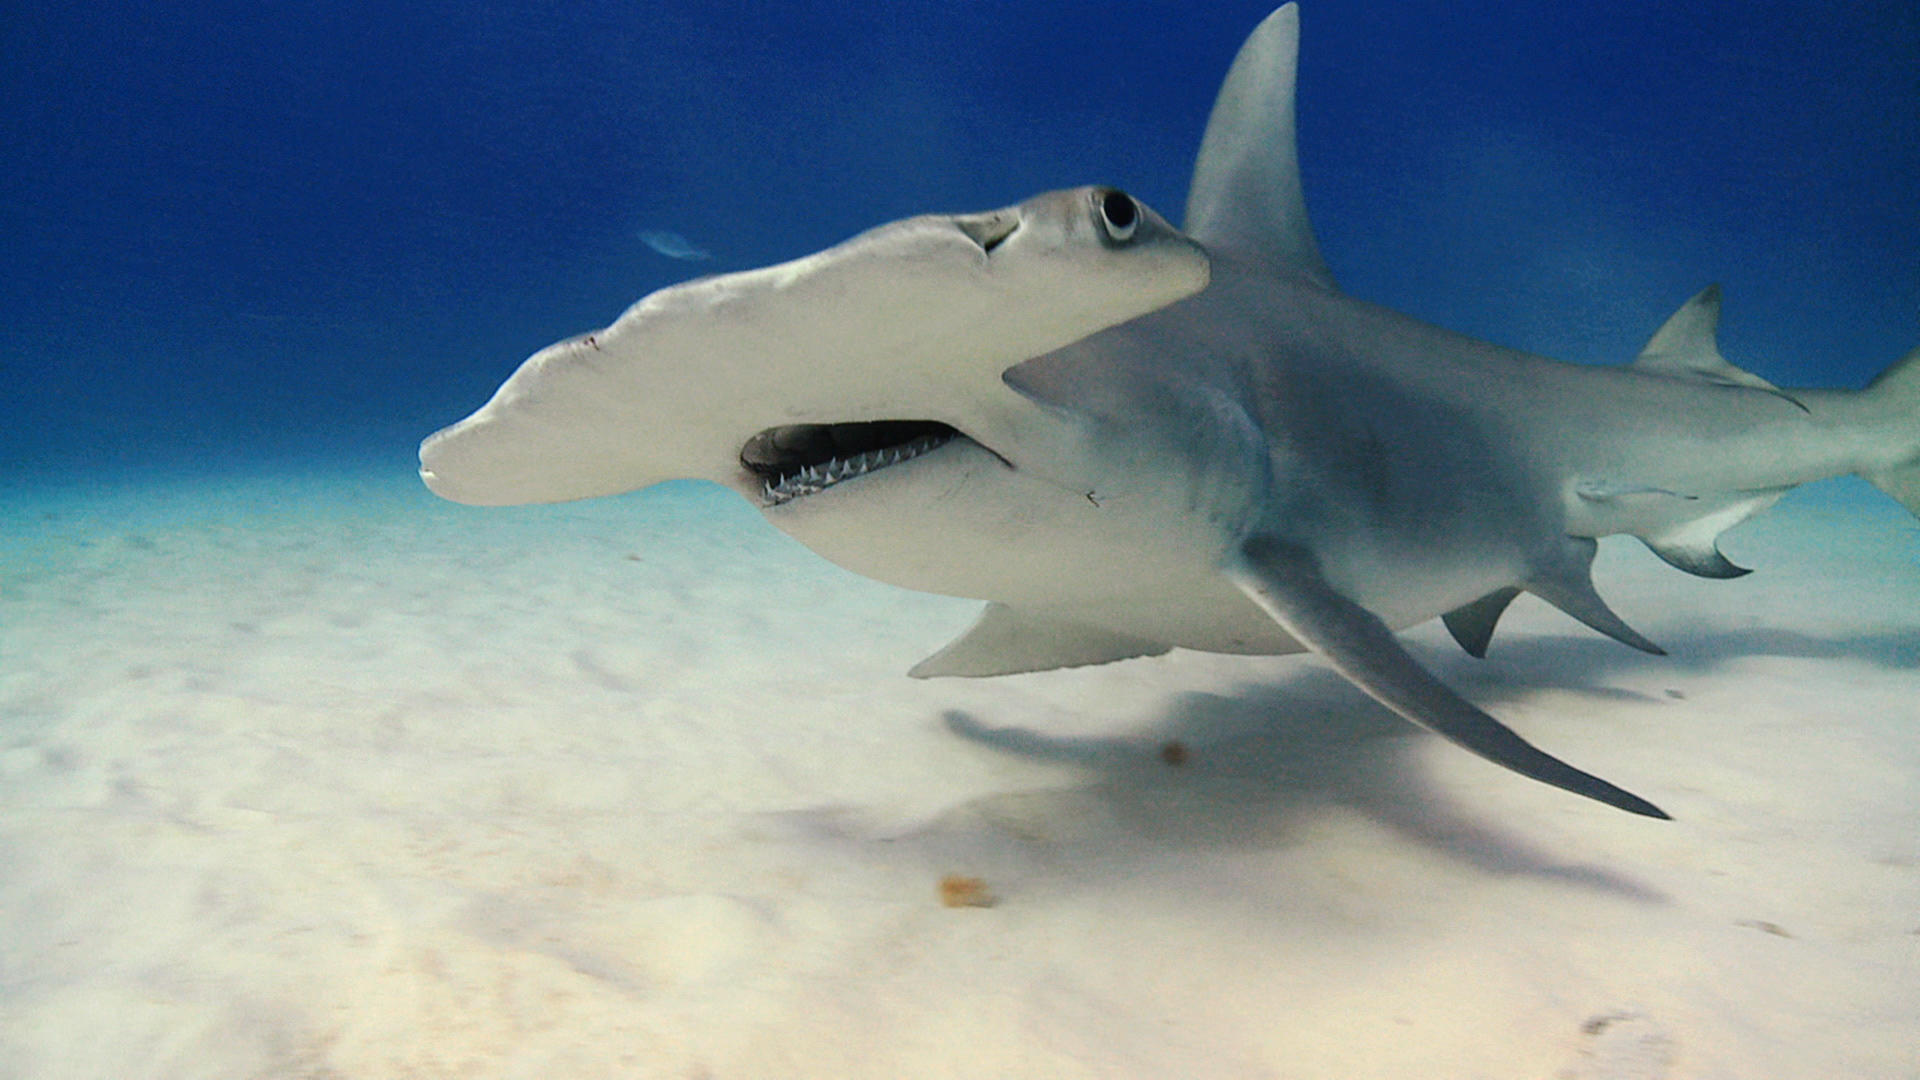 The Hammerhead Electric Vision Shark